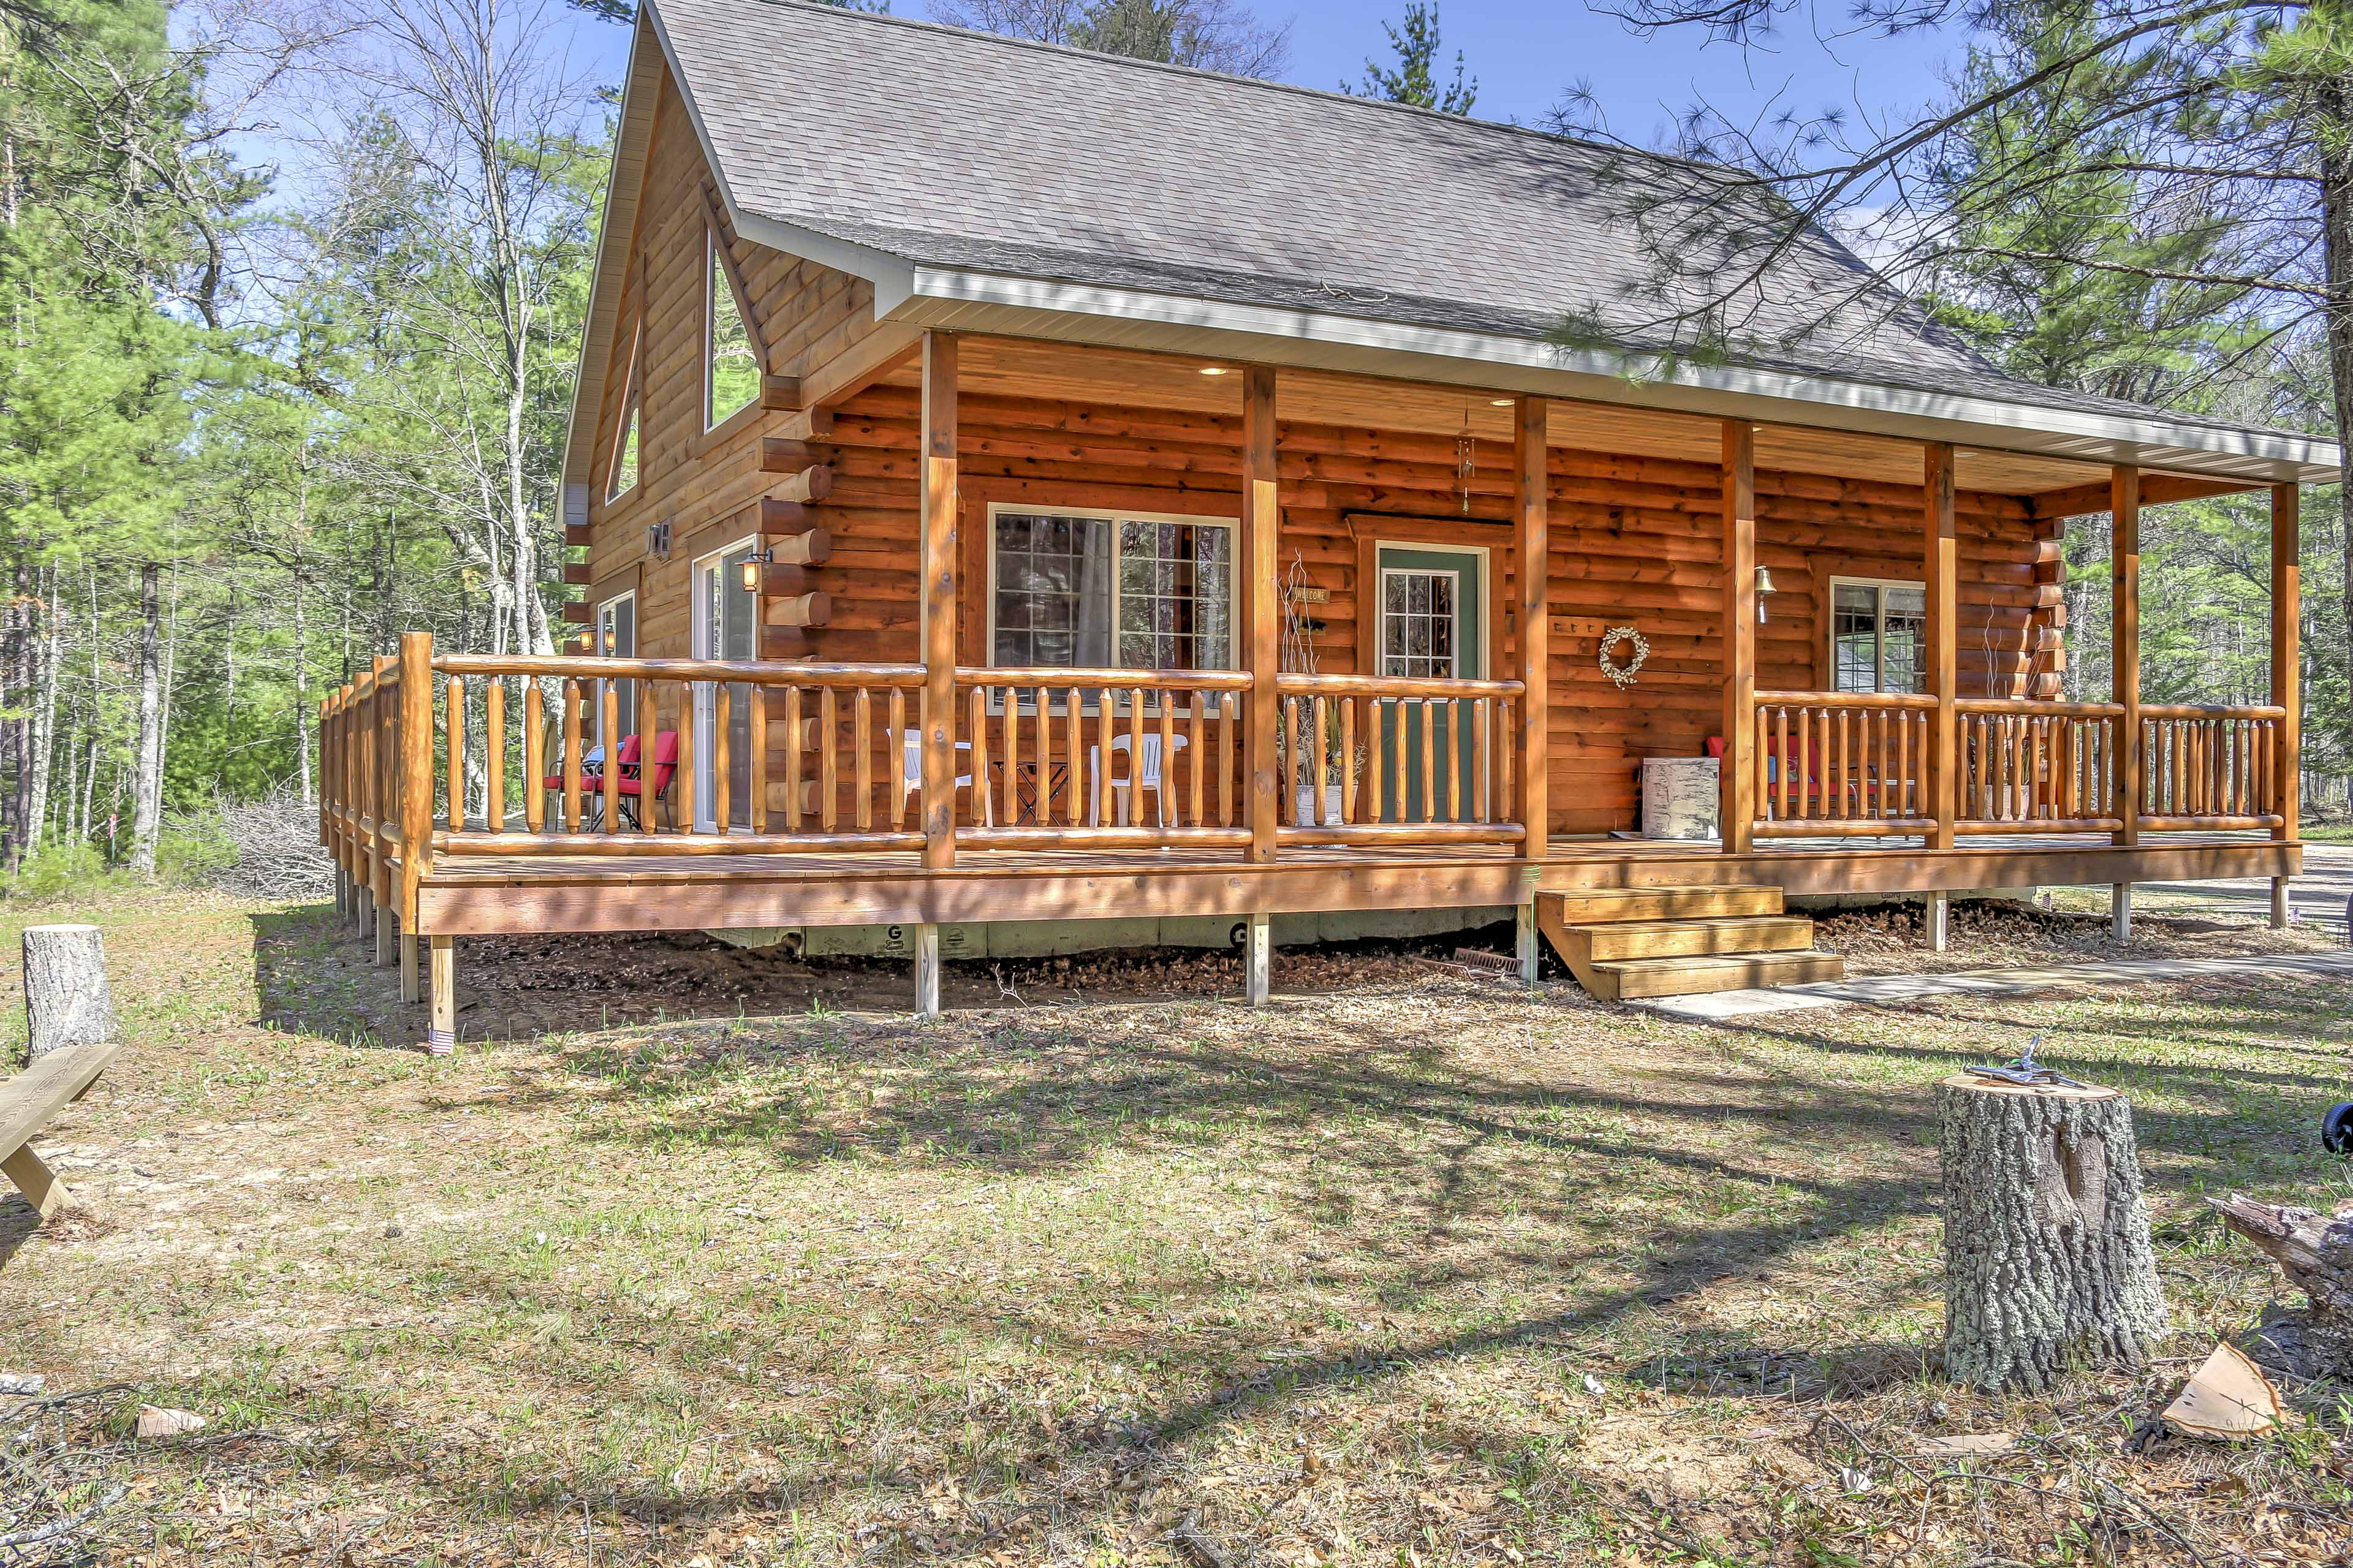 Plan your next escape to Wausaukee at this 3-bedroom, 1.5 bath vacation rental